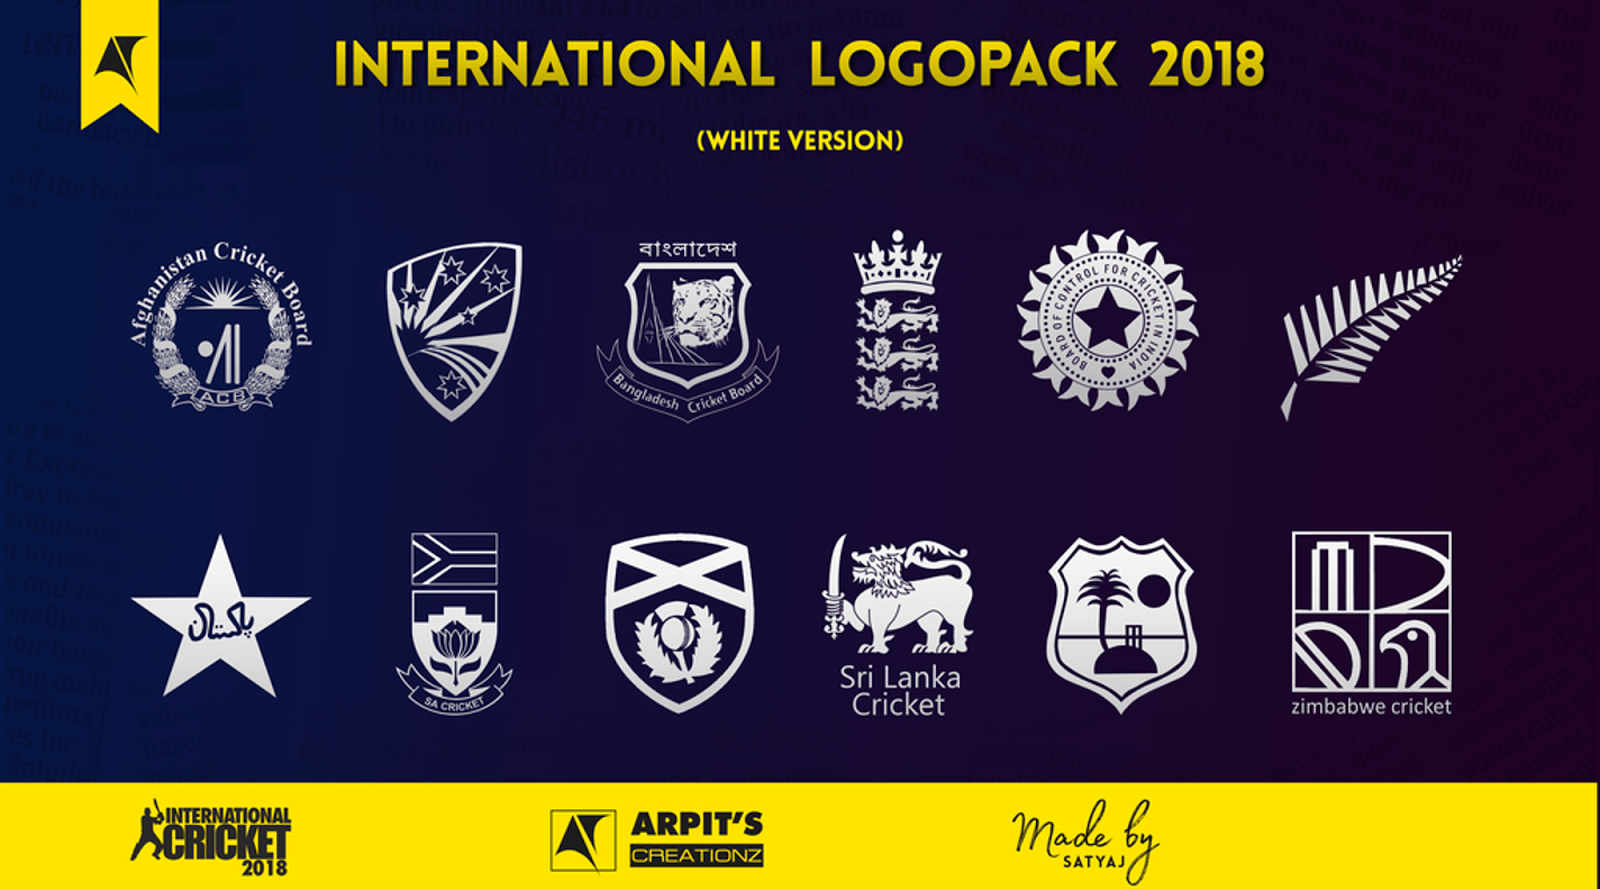 International hd logopack 2018 world wide studio inc a parent company of world wide cricket studio is releasing its new cont ent for all fans of ea sports cricket 07 biocorpaavc